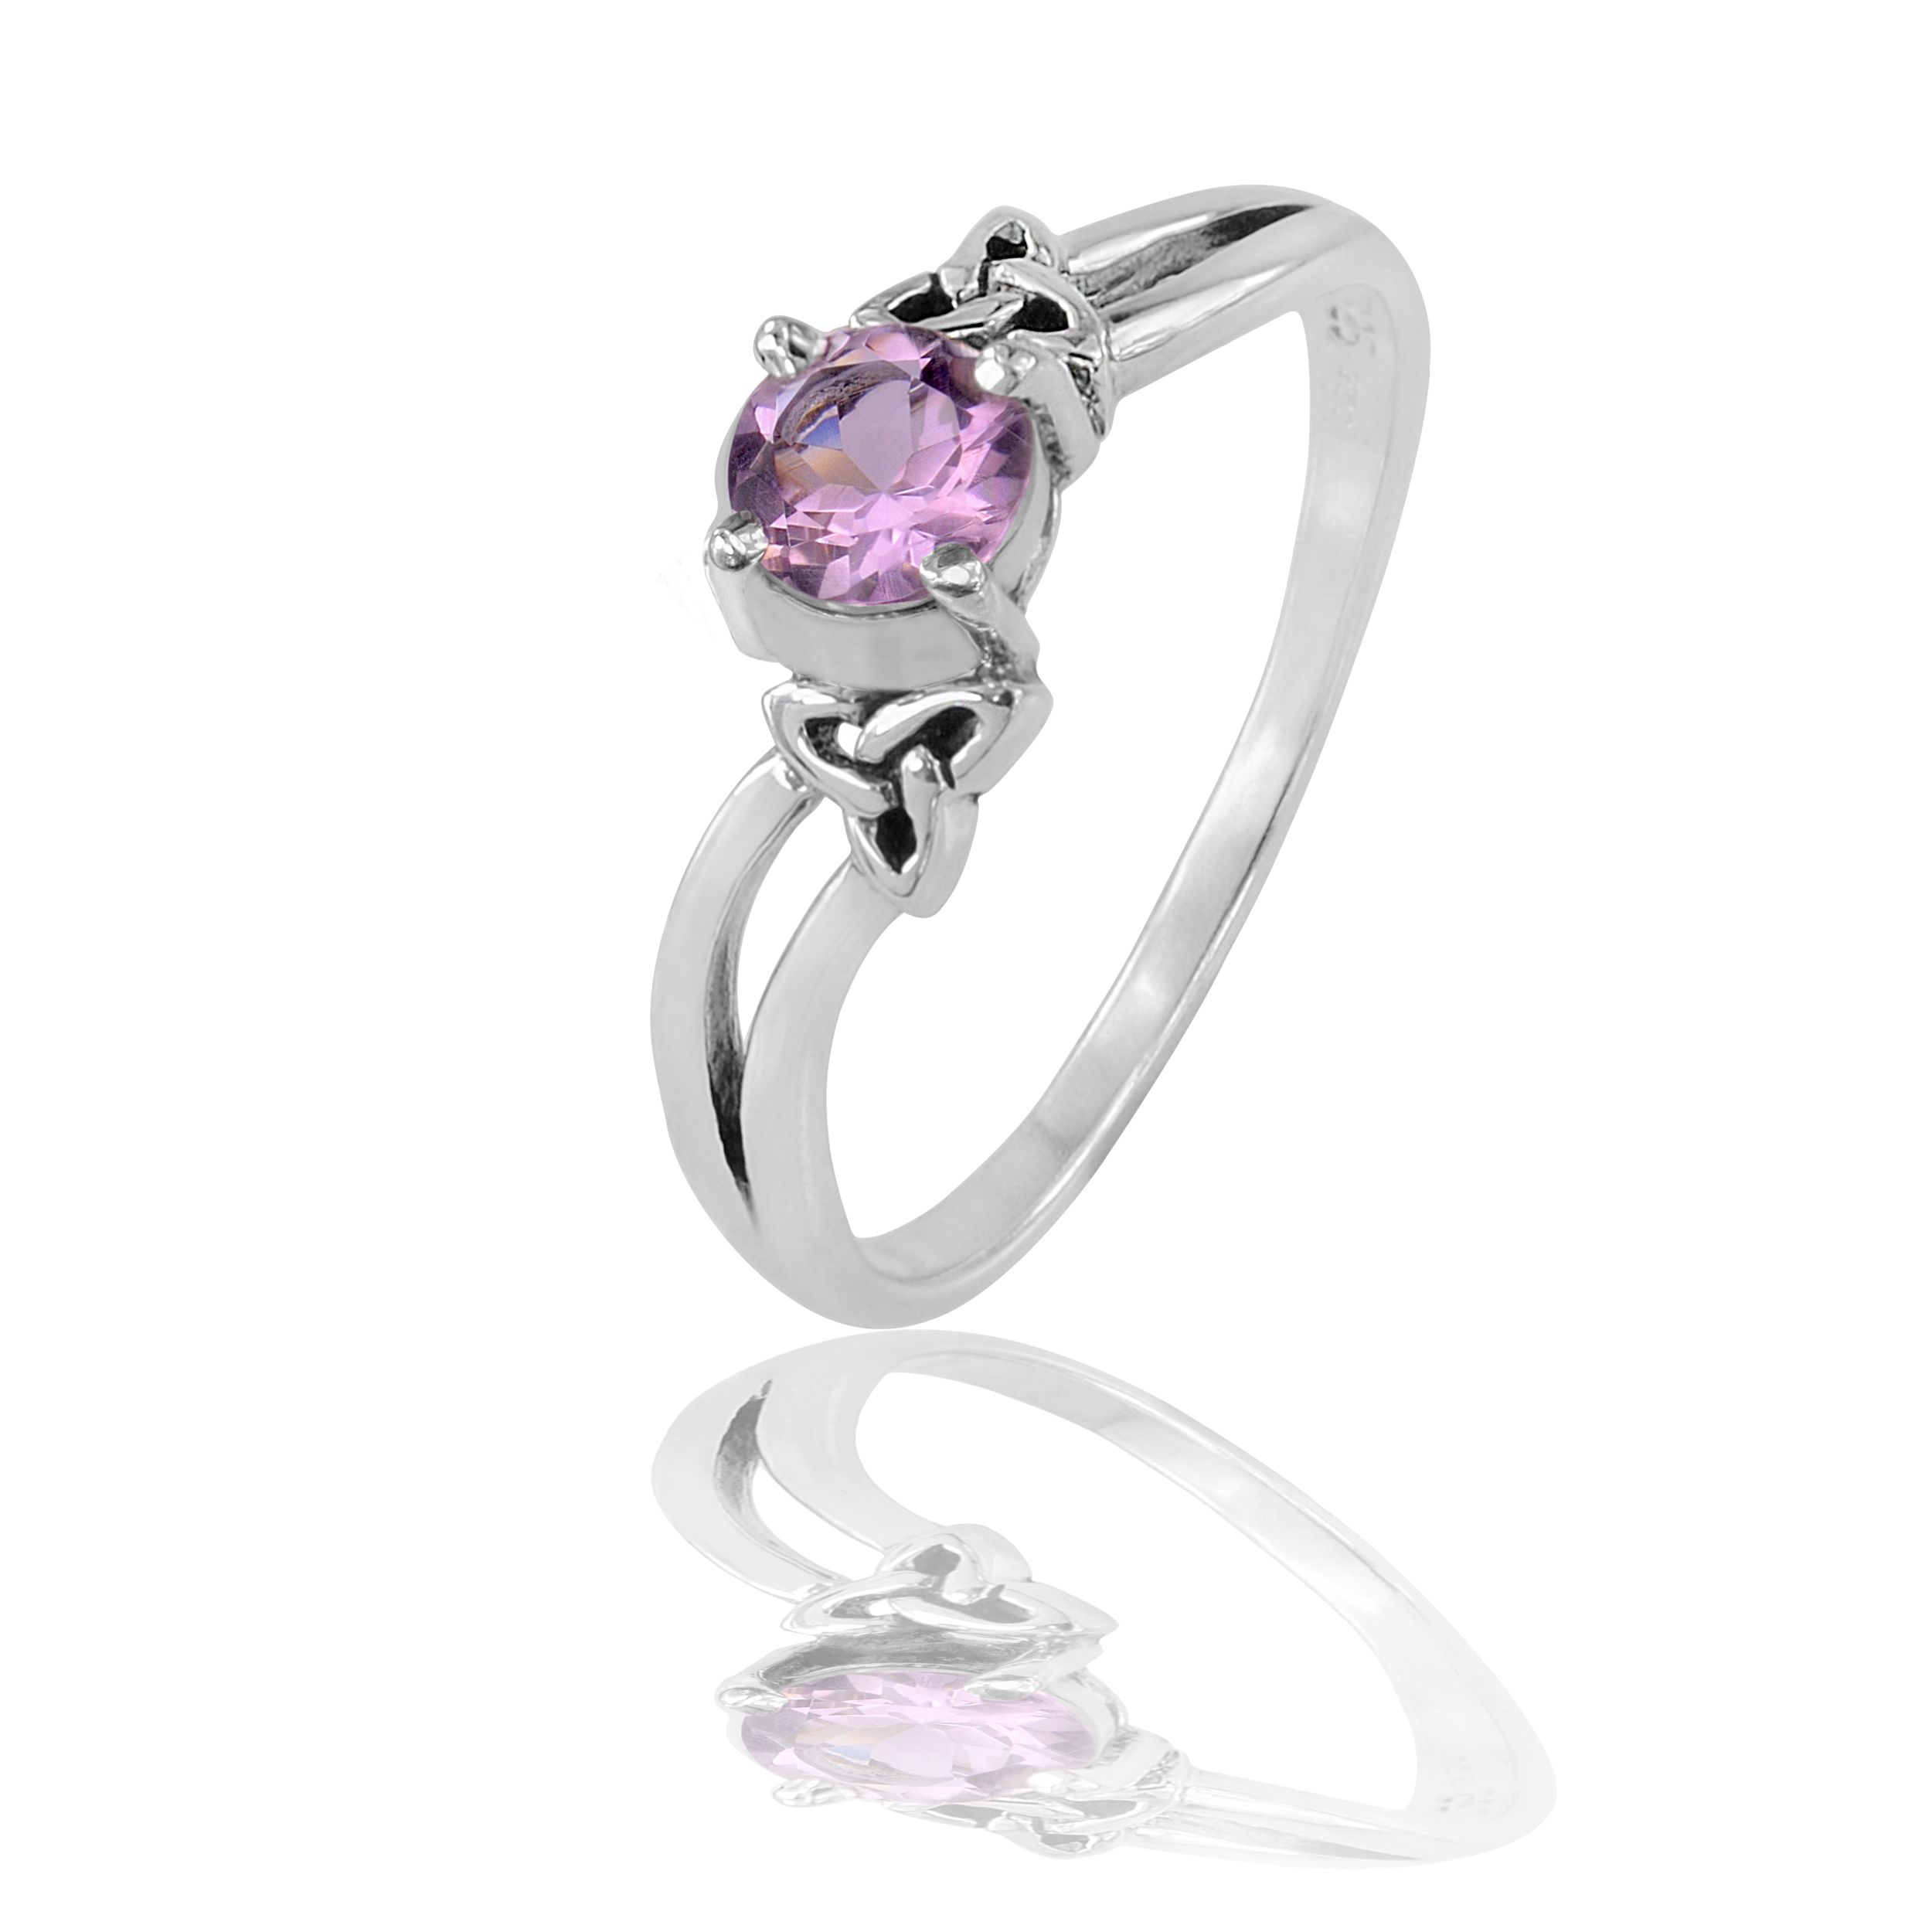 wedding michaelkorsinc amethist of amethyst luxury ring tumblr rings sets fresh engagement